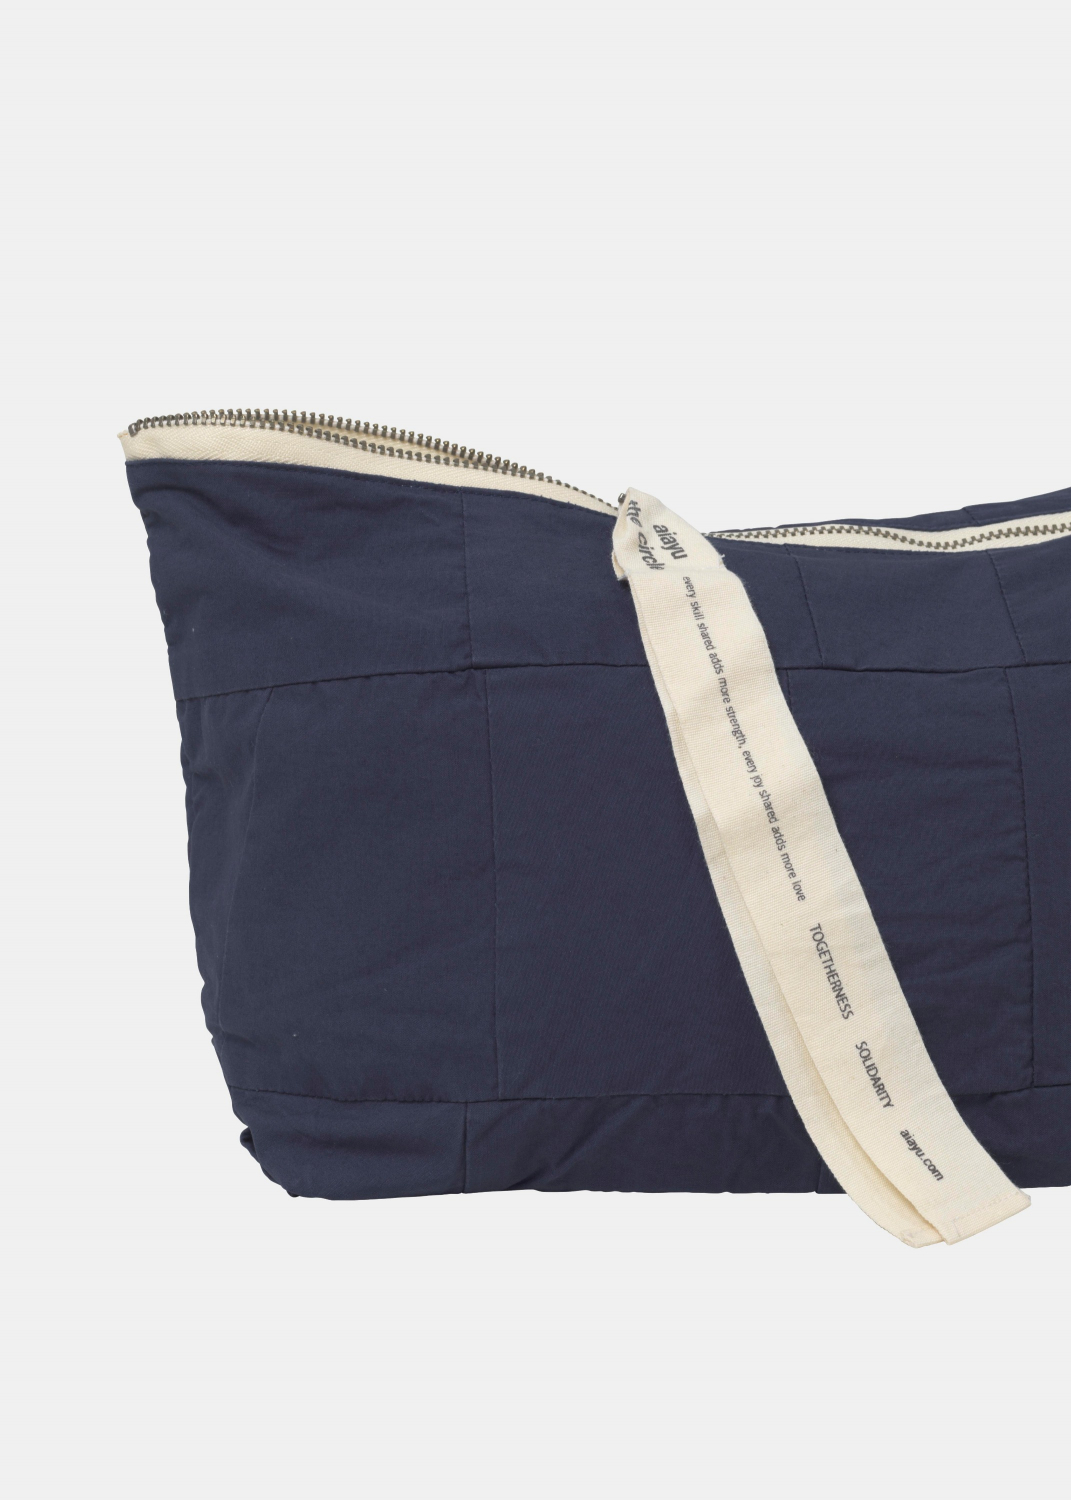 The Circle Collection - Circle Patchwork Pouch